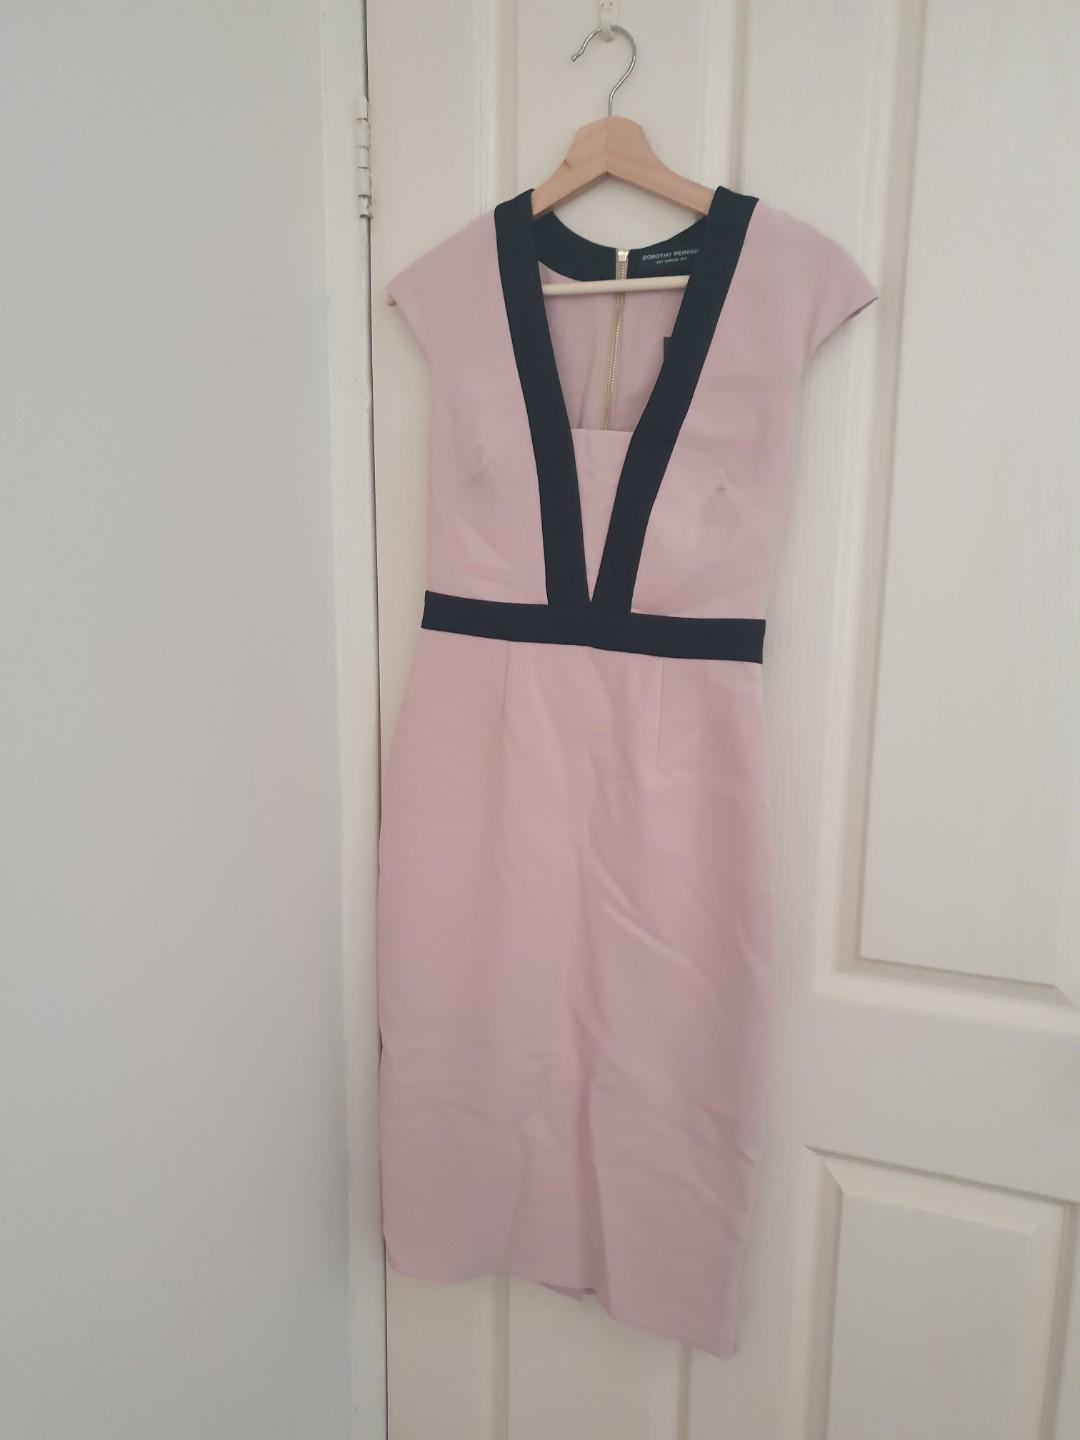 Dorothy Perkins pink and black dress new with tags